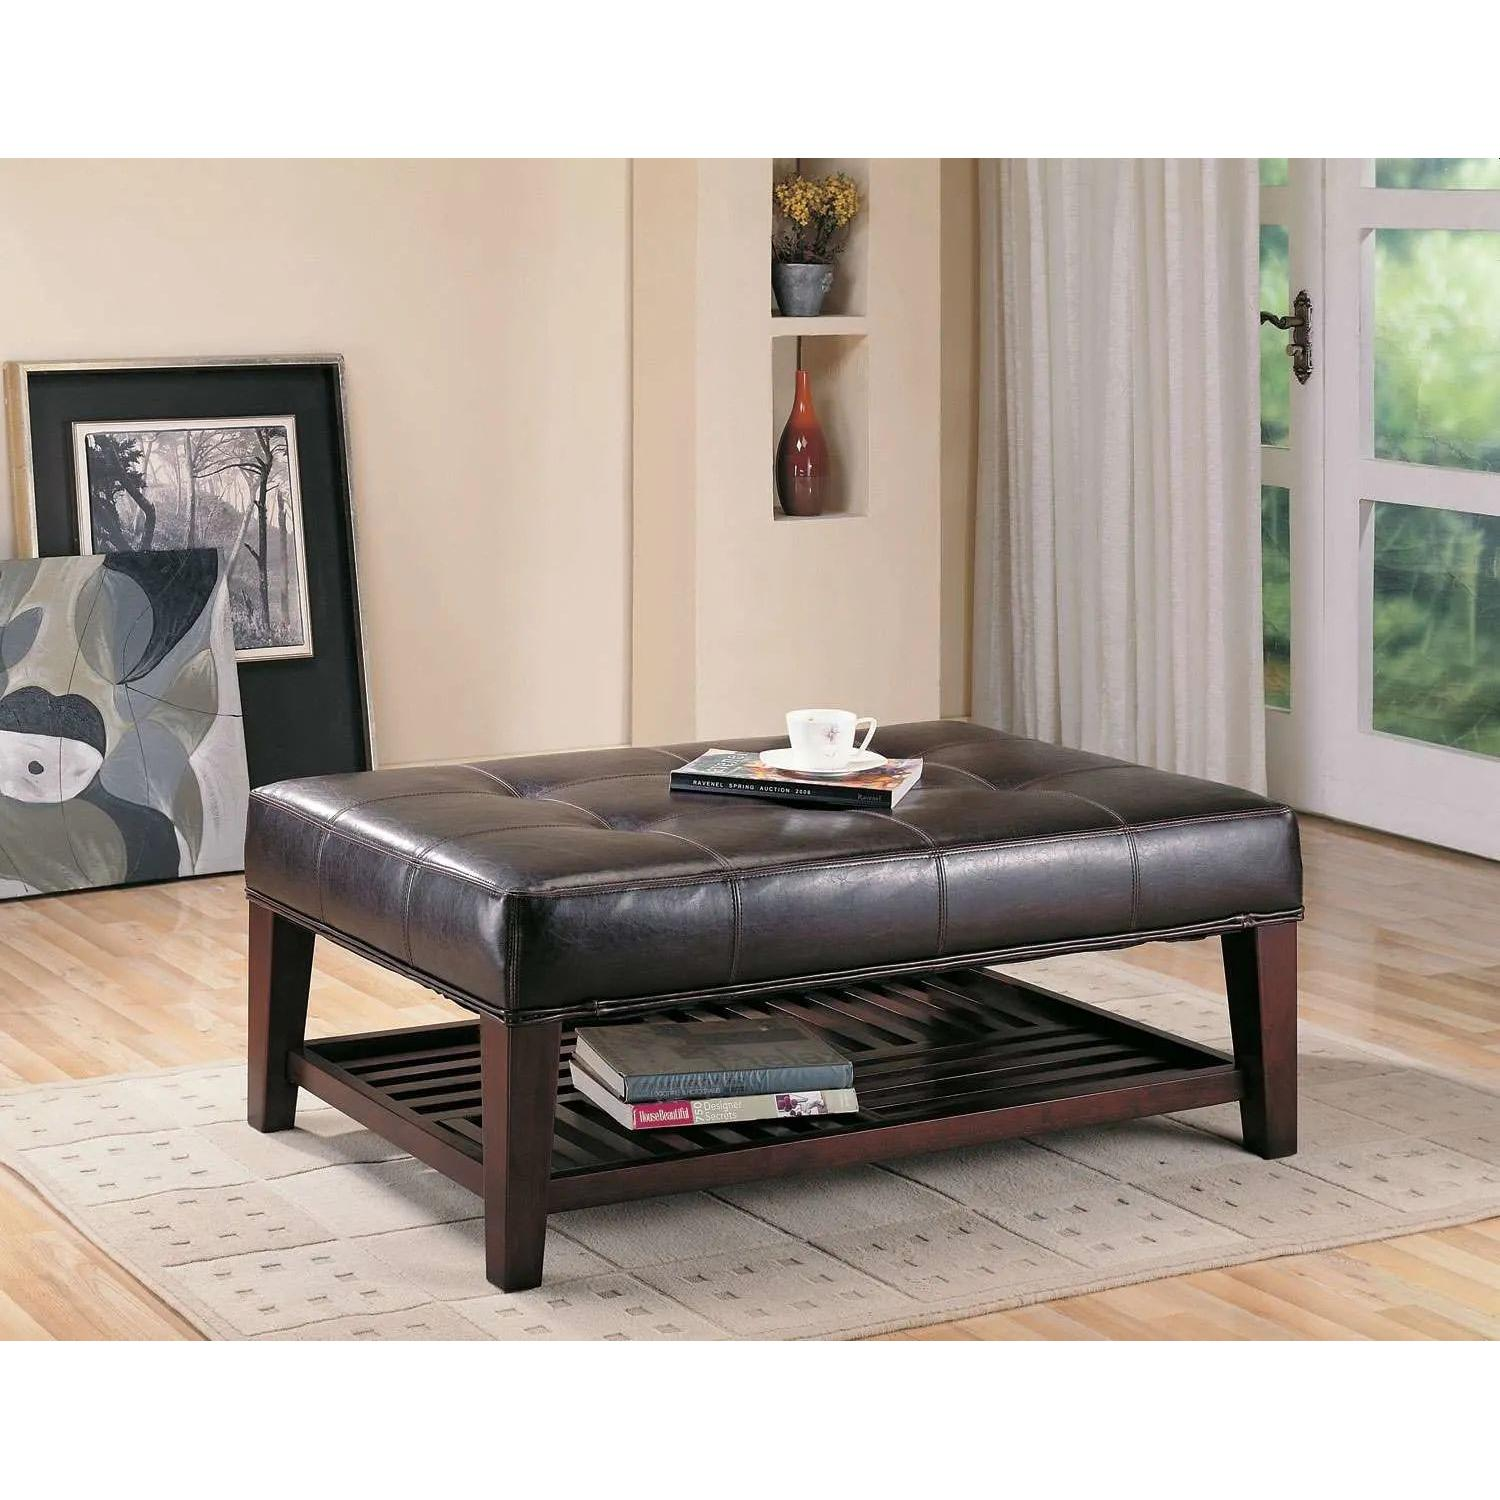 Cushioned Bench in Dark Brown Leatherette w/ Shelf - image-3